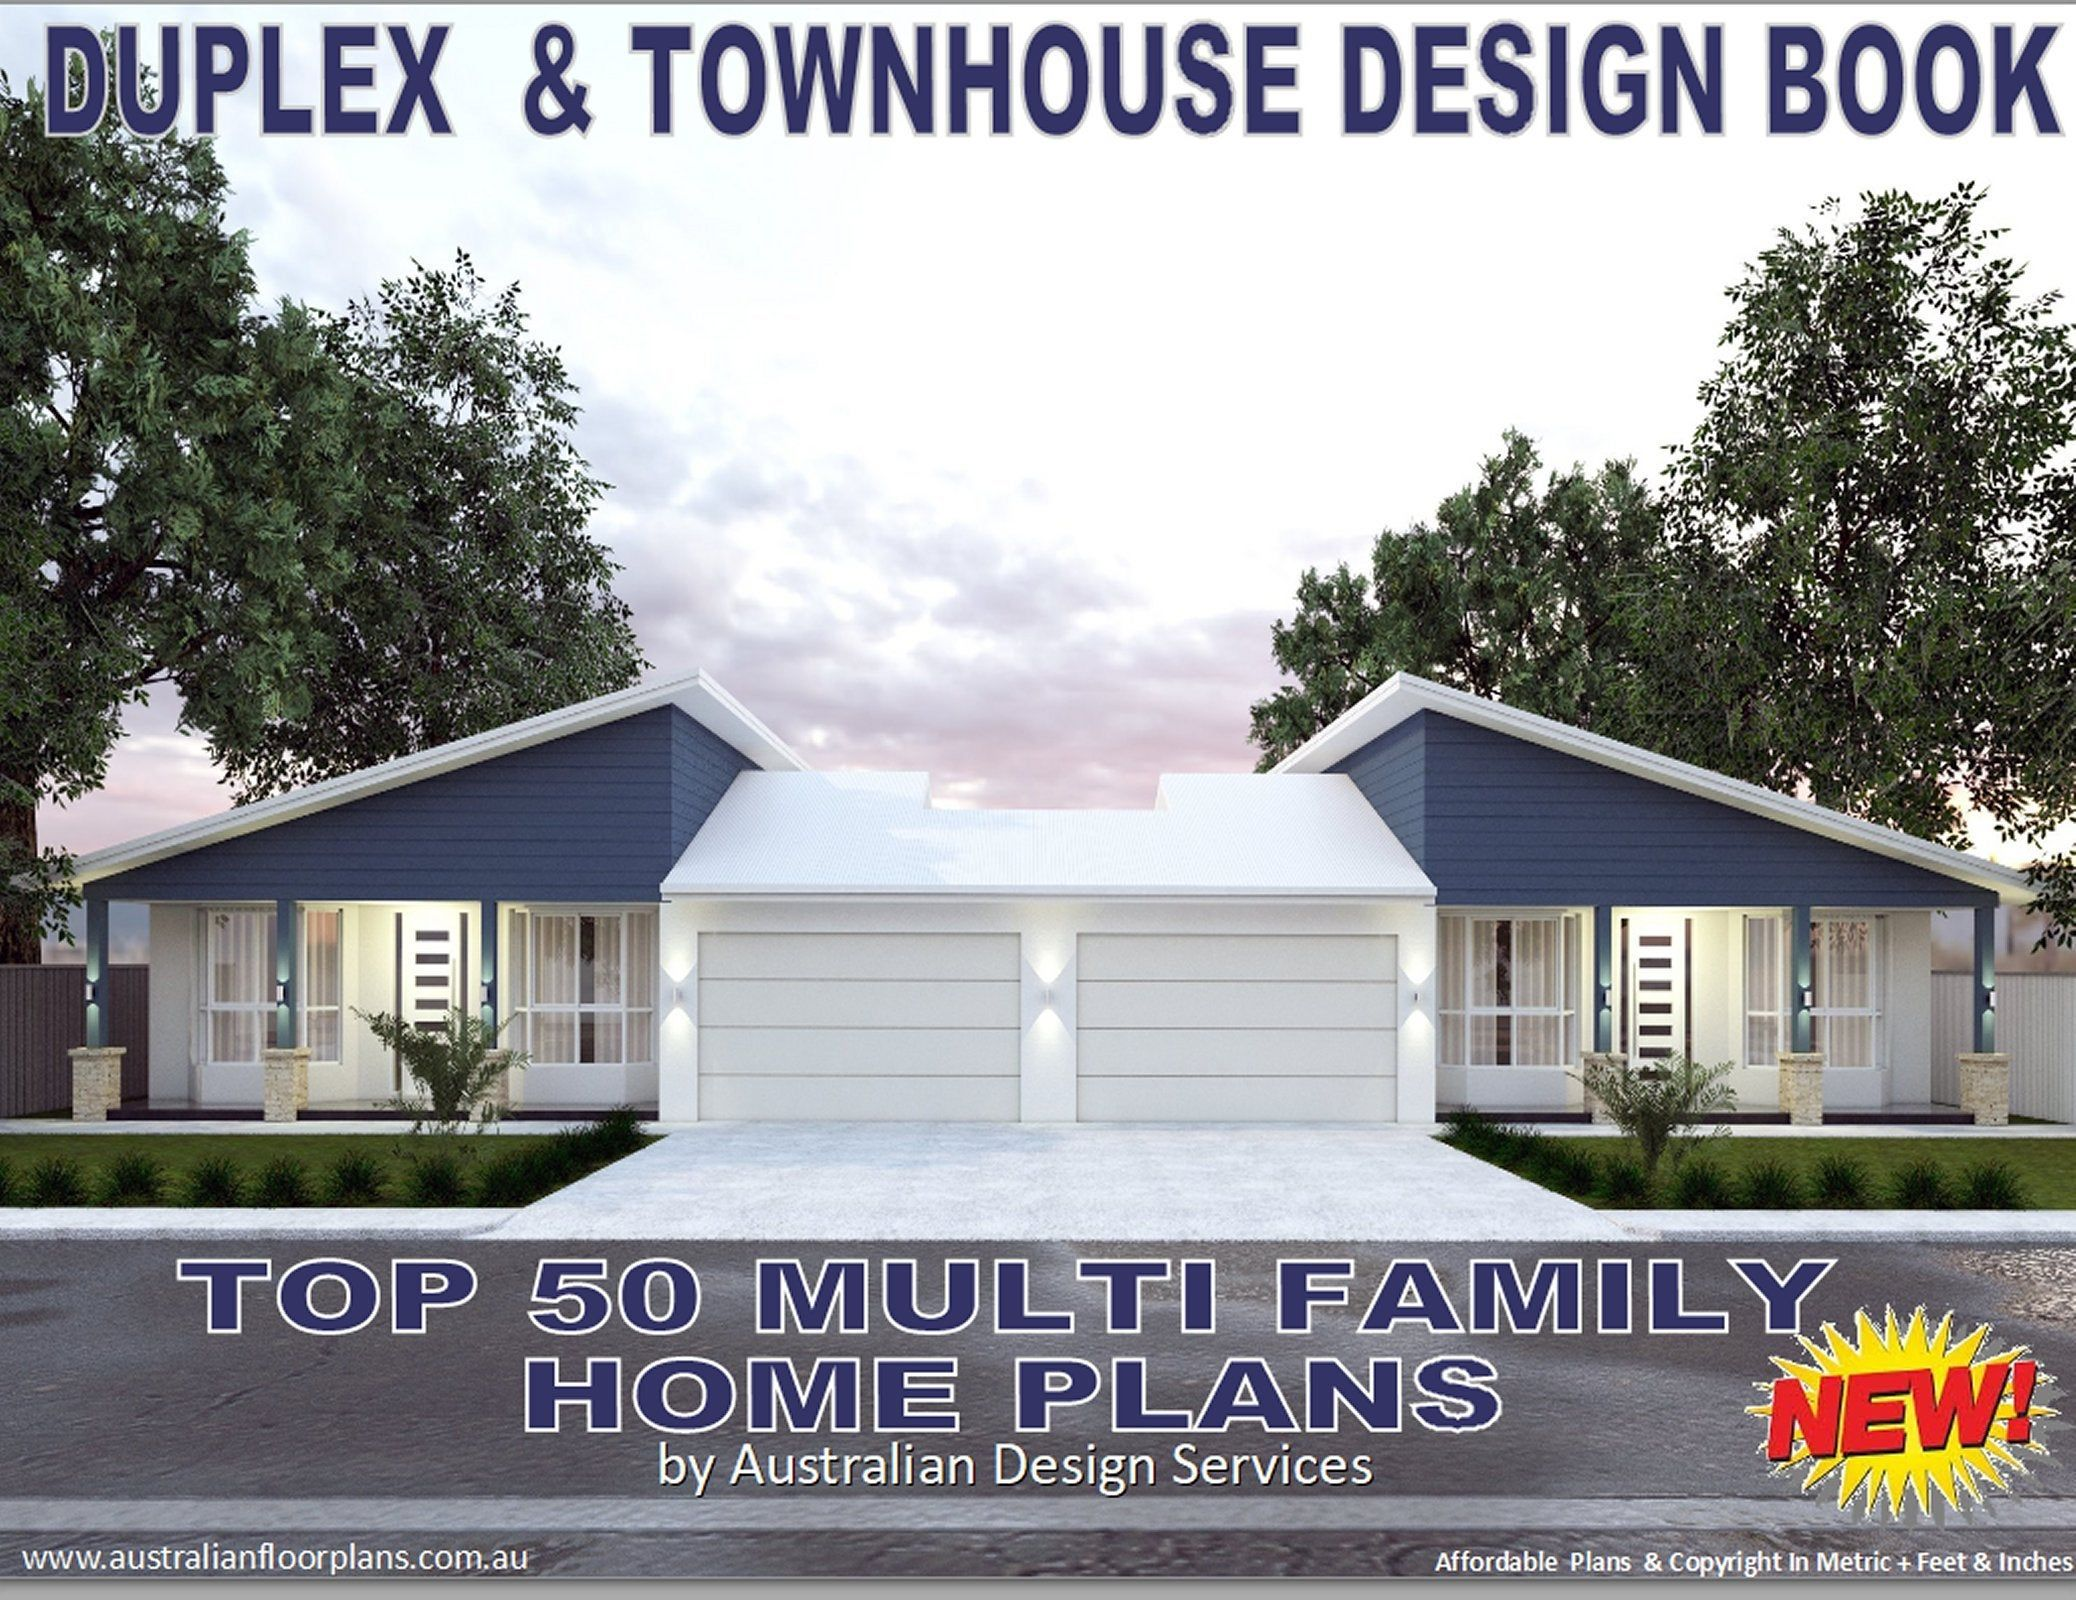 Best Selling Duplex Home Designs Architectural Home Designs Etsy Family House Plans Duplex House Design Duplex House Plans